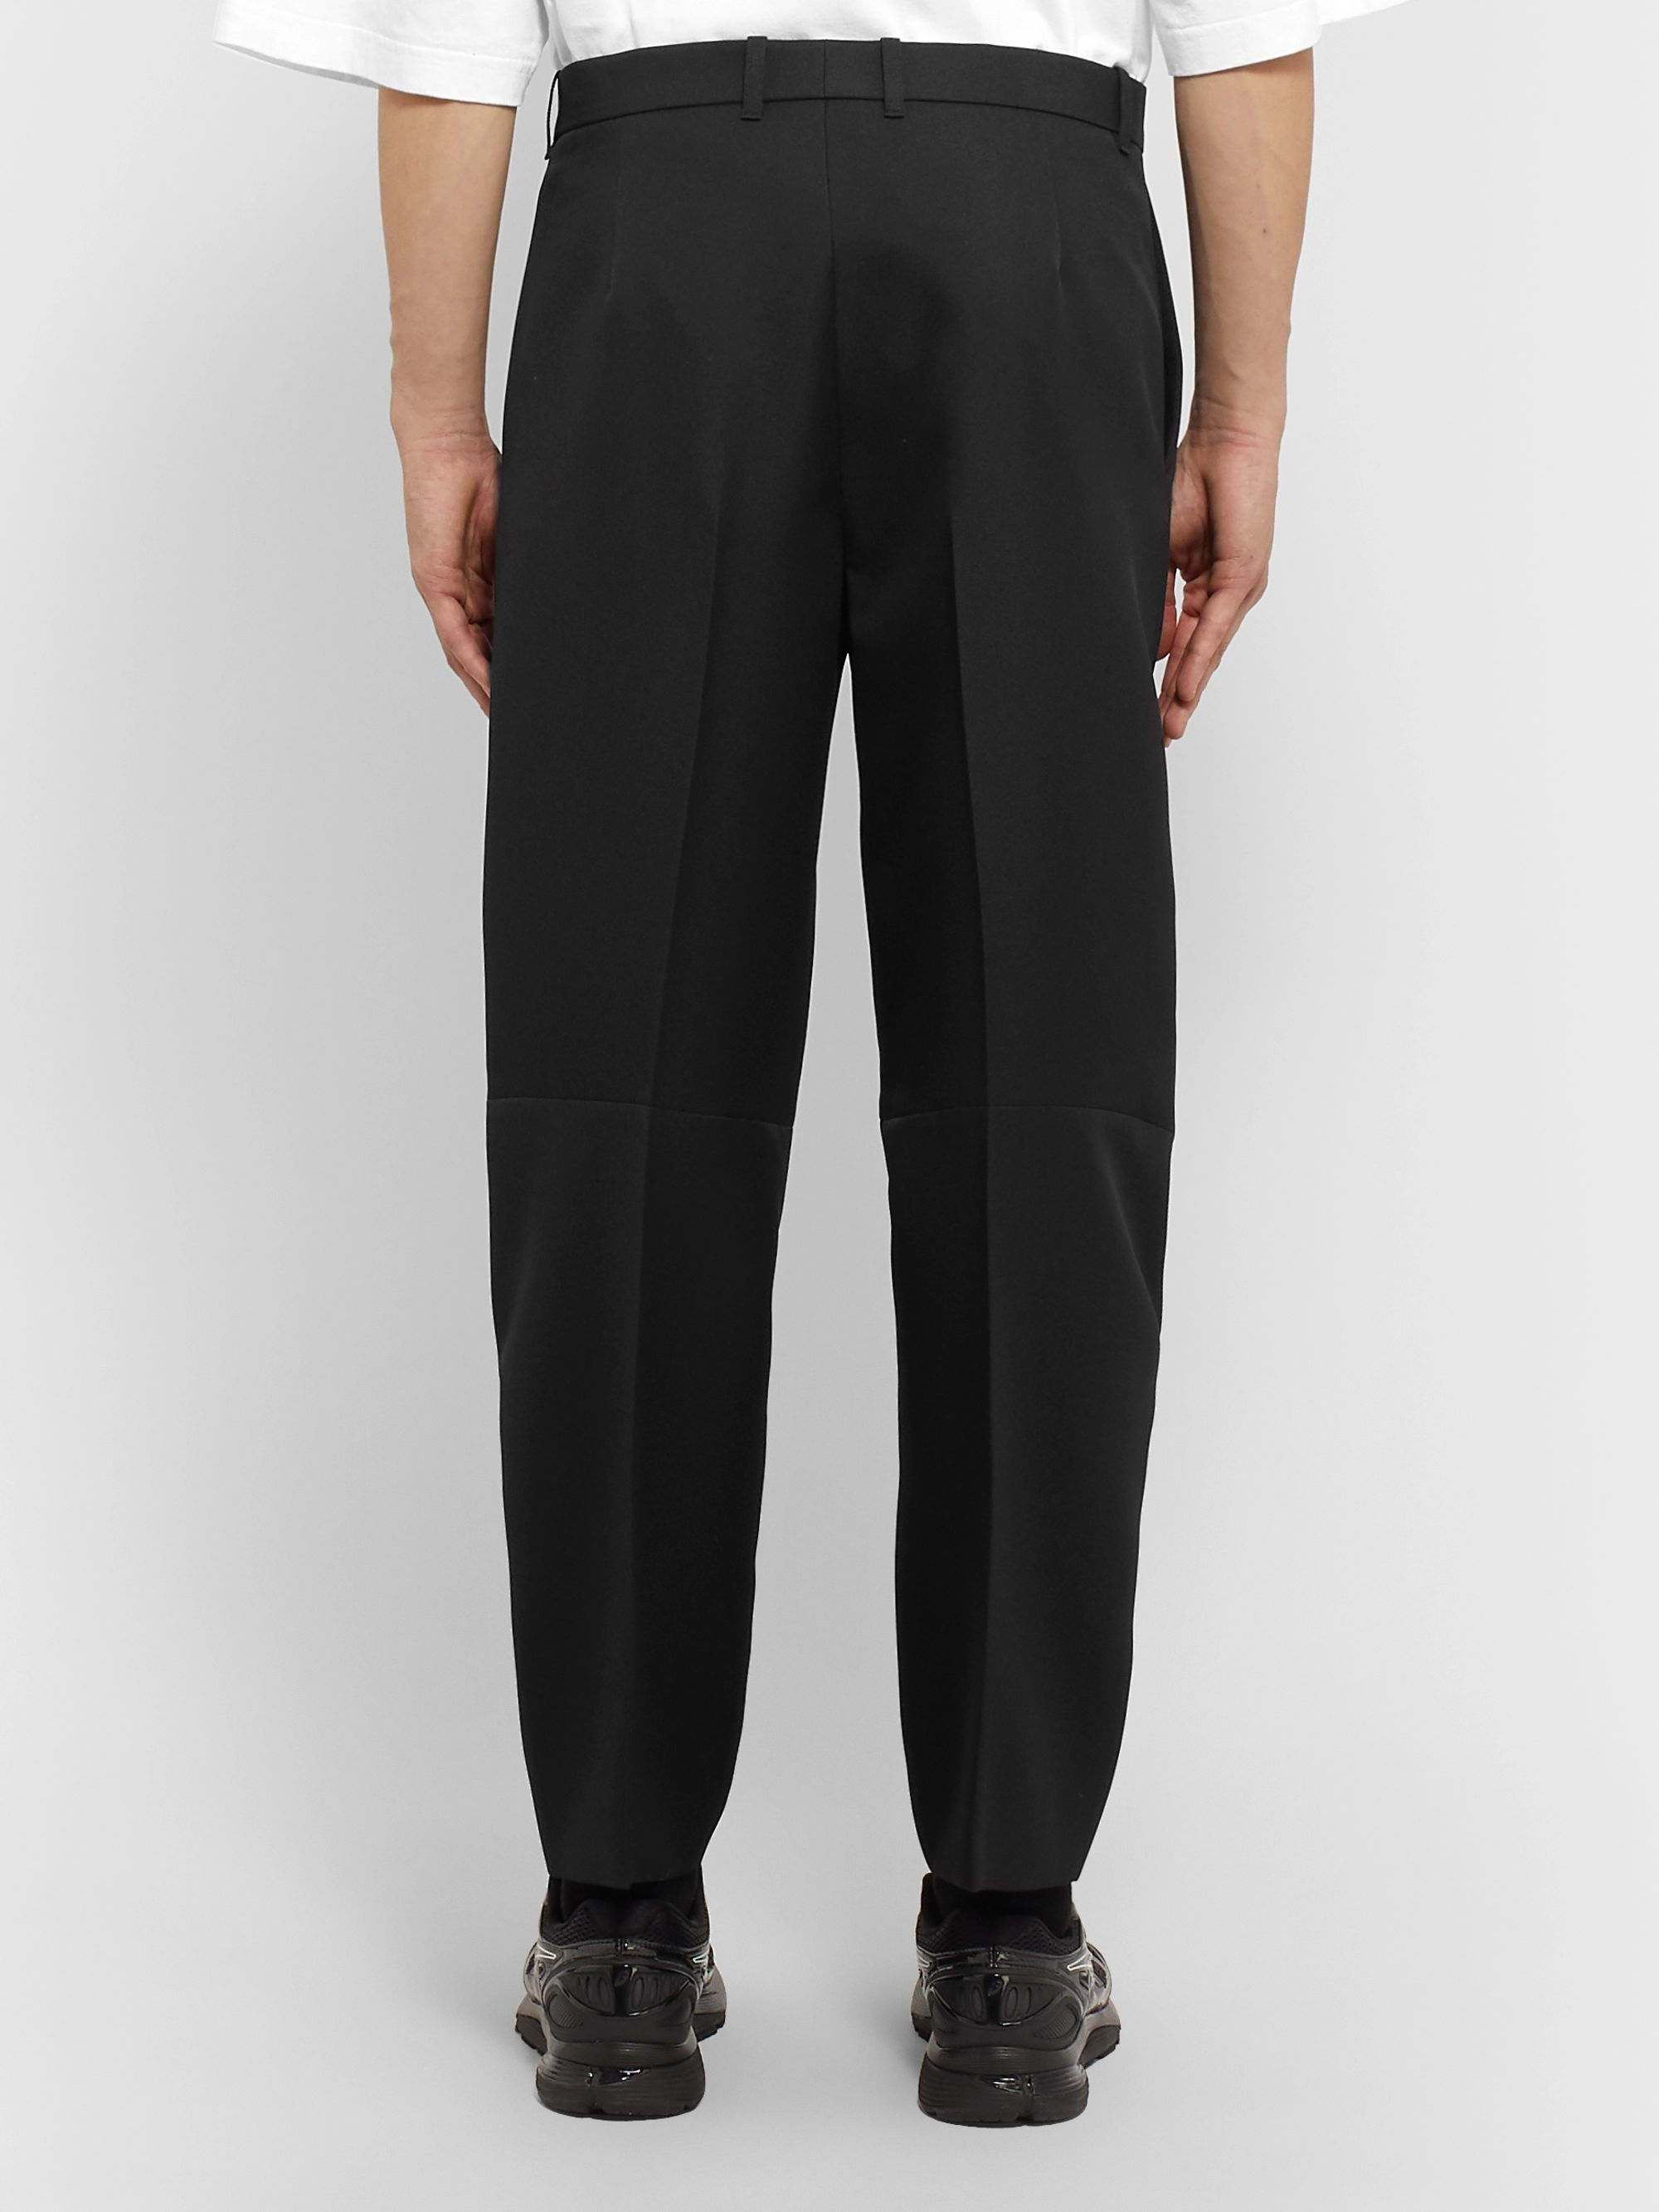 Balenciaga Black Wide-Leg Twill Trousers